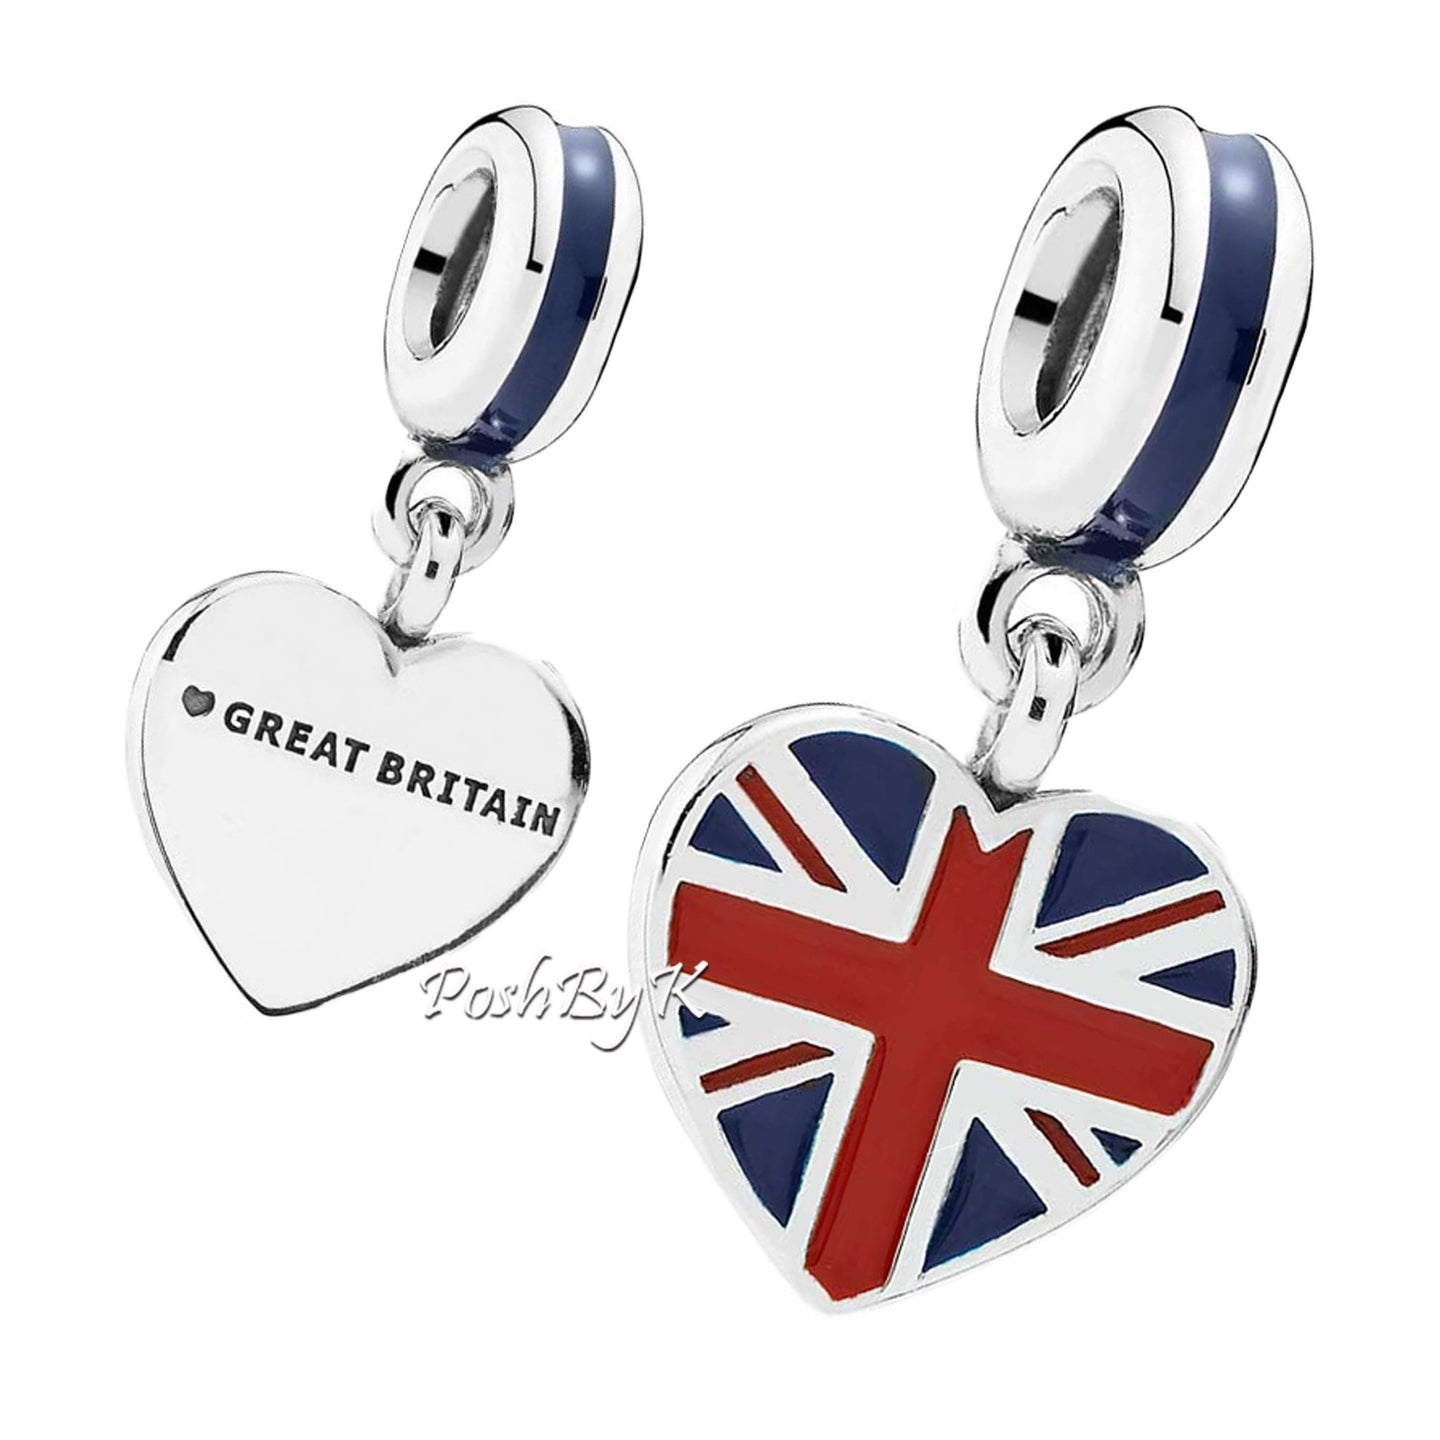 Pandora Great Britain Heart Flag Charm 791512ENMX - Posh By K